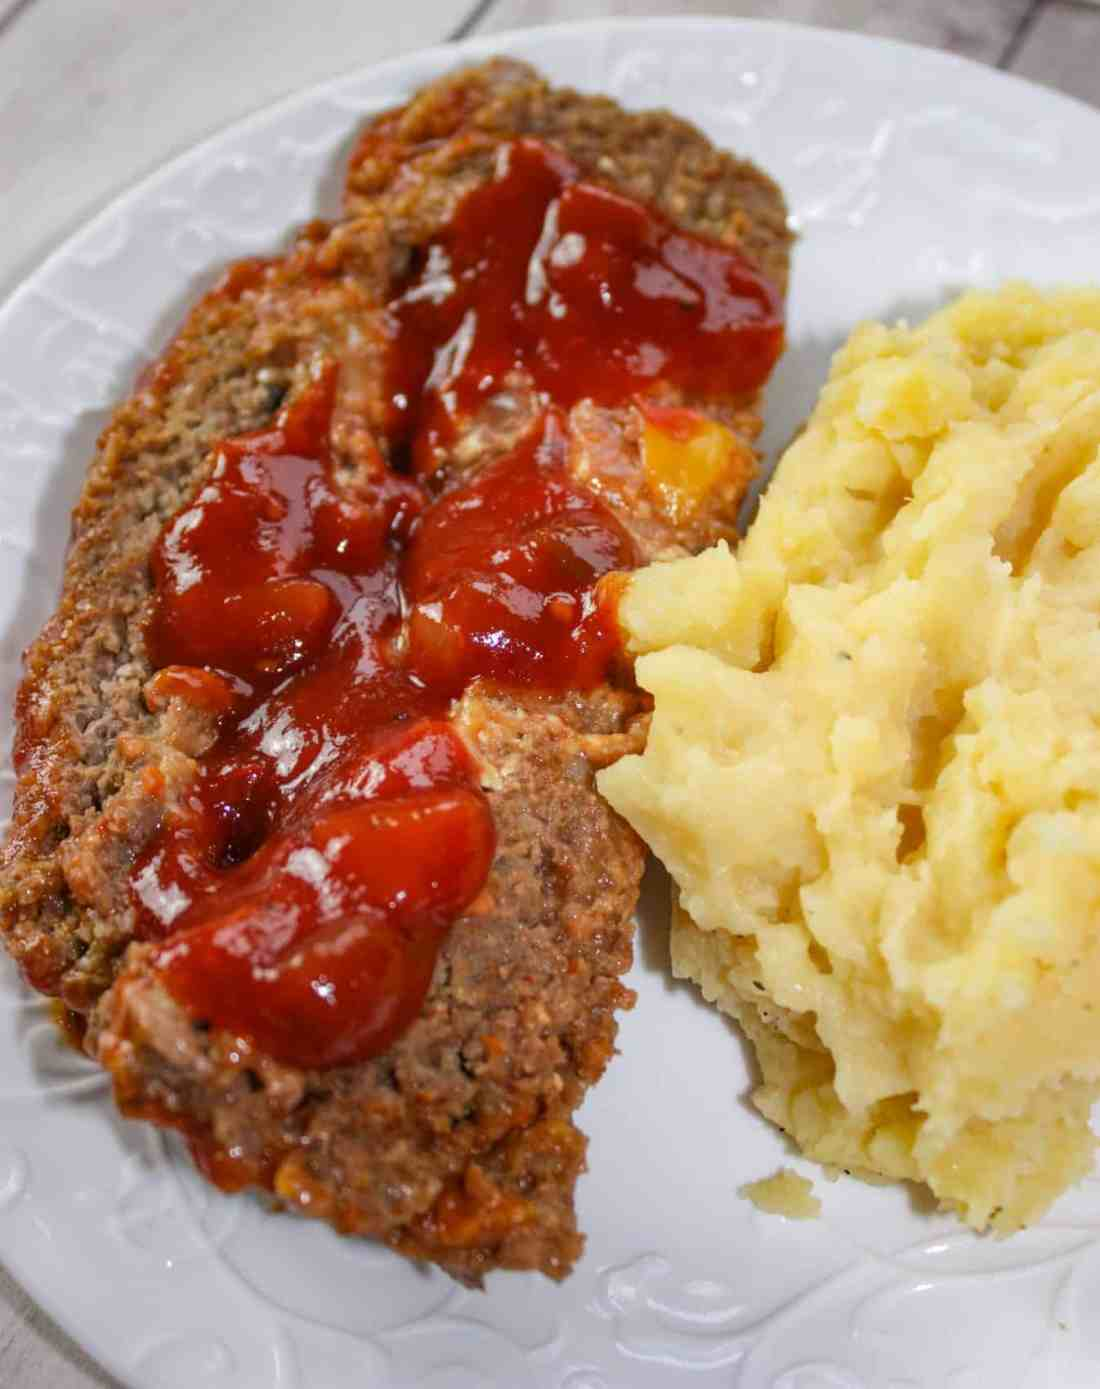 The stuffed meatloaf is moist, full of flavour and paired with a side of garlic mashed potatoes that will satisfy your taste buds.